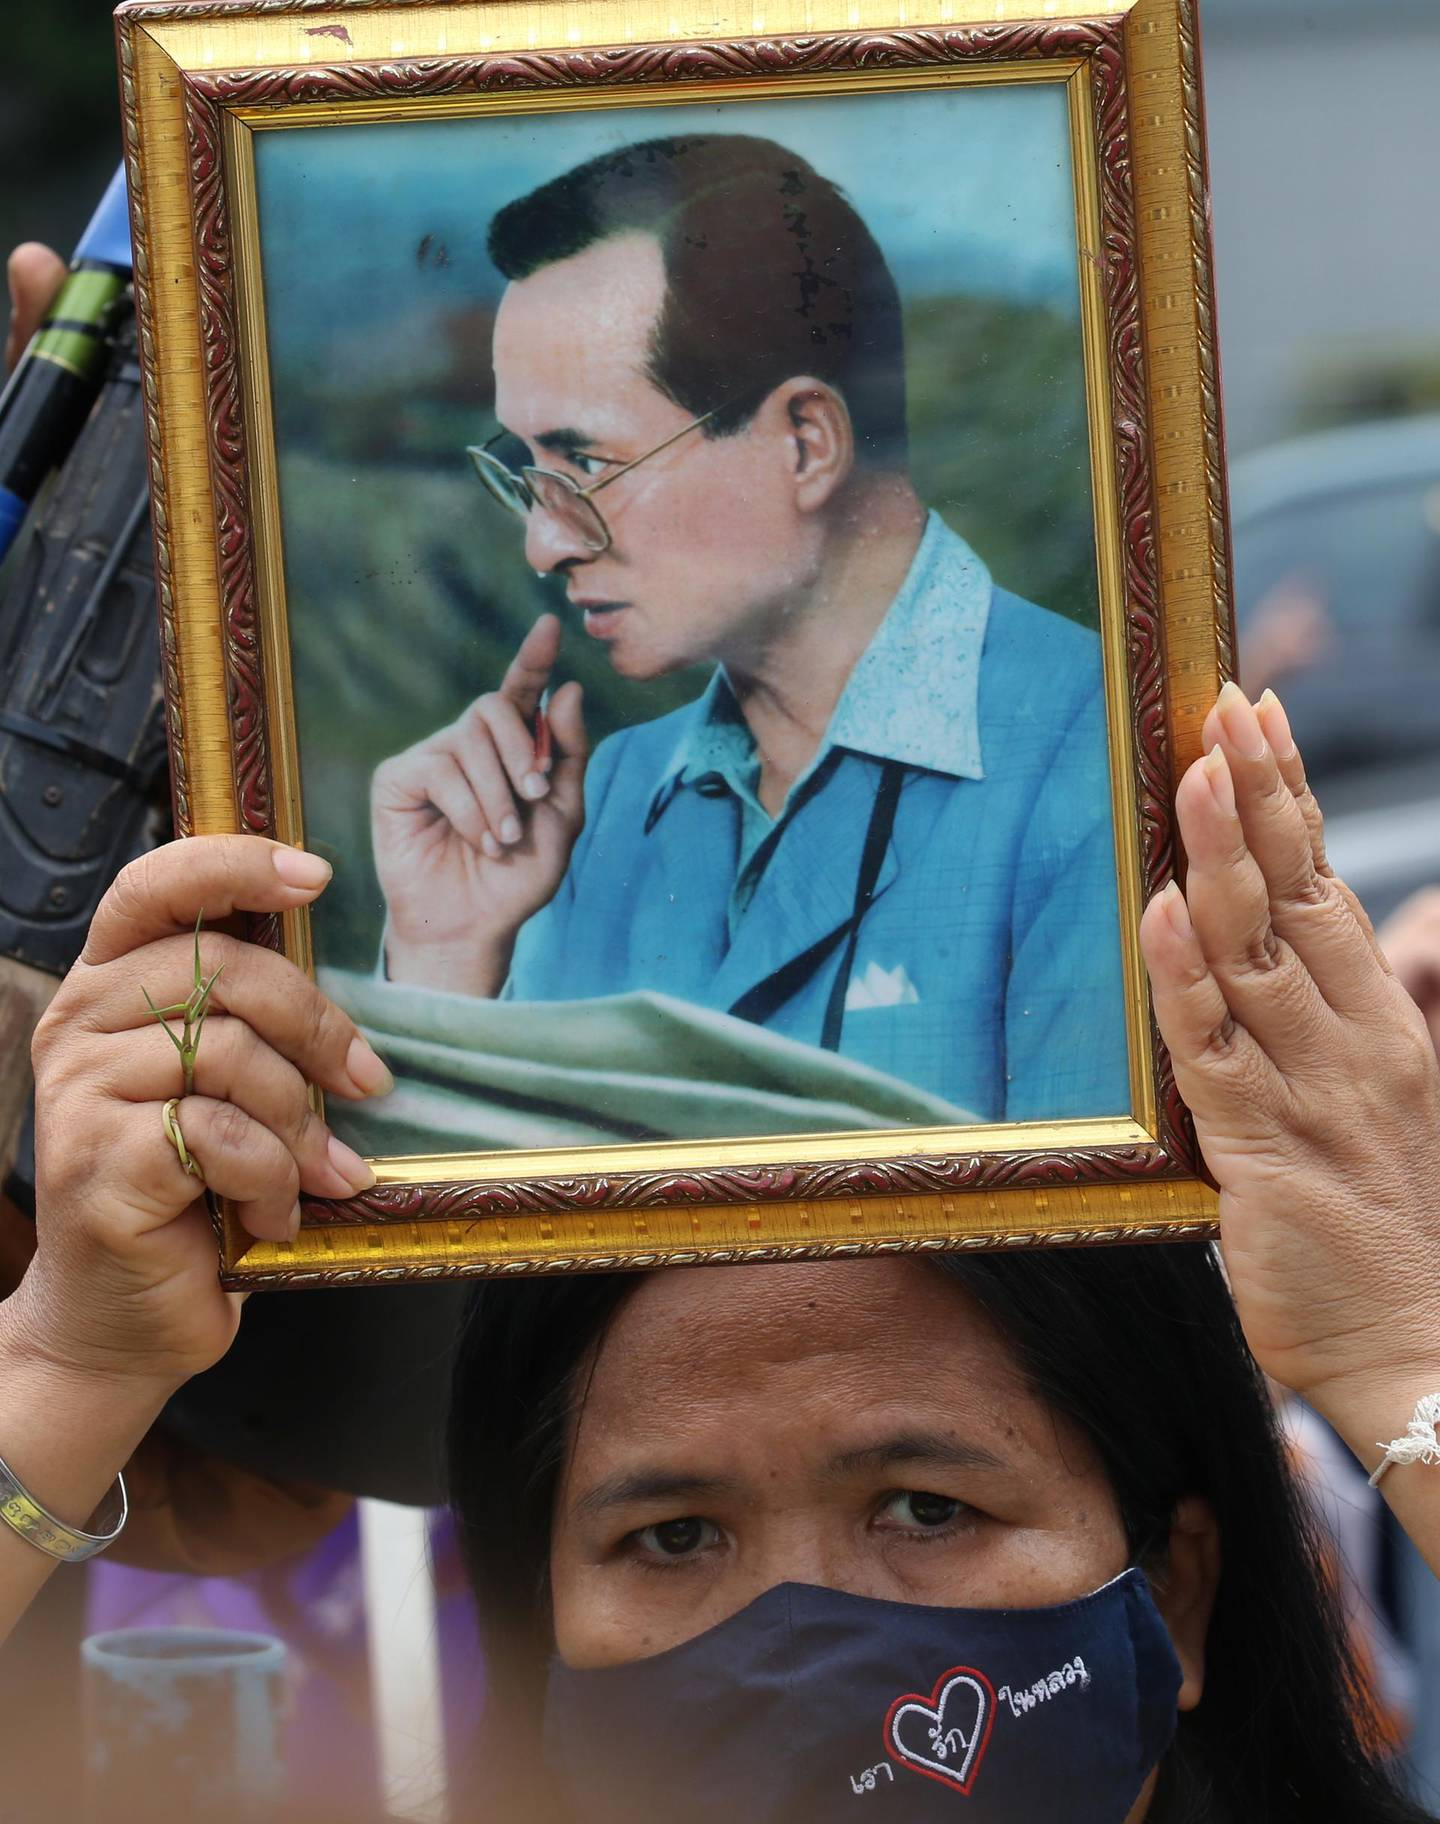 epa08689765 A Royalist and pro-government supporter holds a photograph of the late Thai King Bhumibol Adulyadej, during a rally held to show opposition to any amendments to the constitution, outside the Parliament House, in Bangkok, Thailand, 23 September 2020. The parliament of Thailand will hold special sessions from 23 to 24 September 2020 to deliberate charter amendment proposals and the establishment of a charter drafting group.  EPA/NARONG SANGNAK